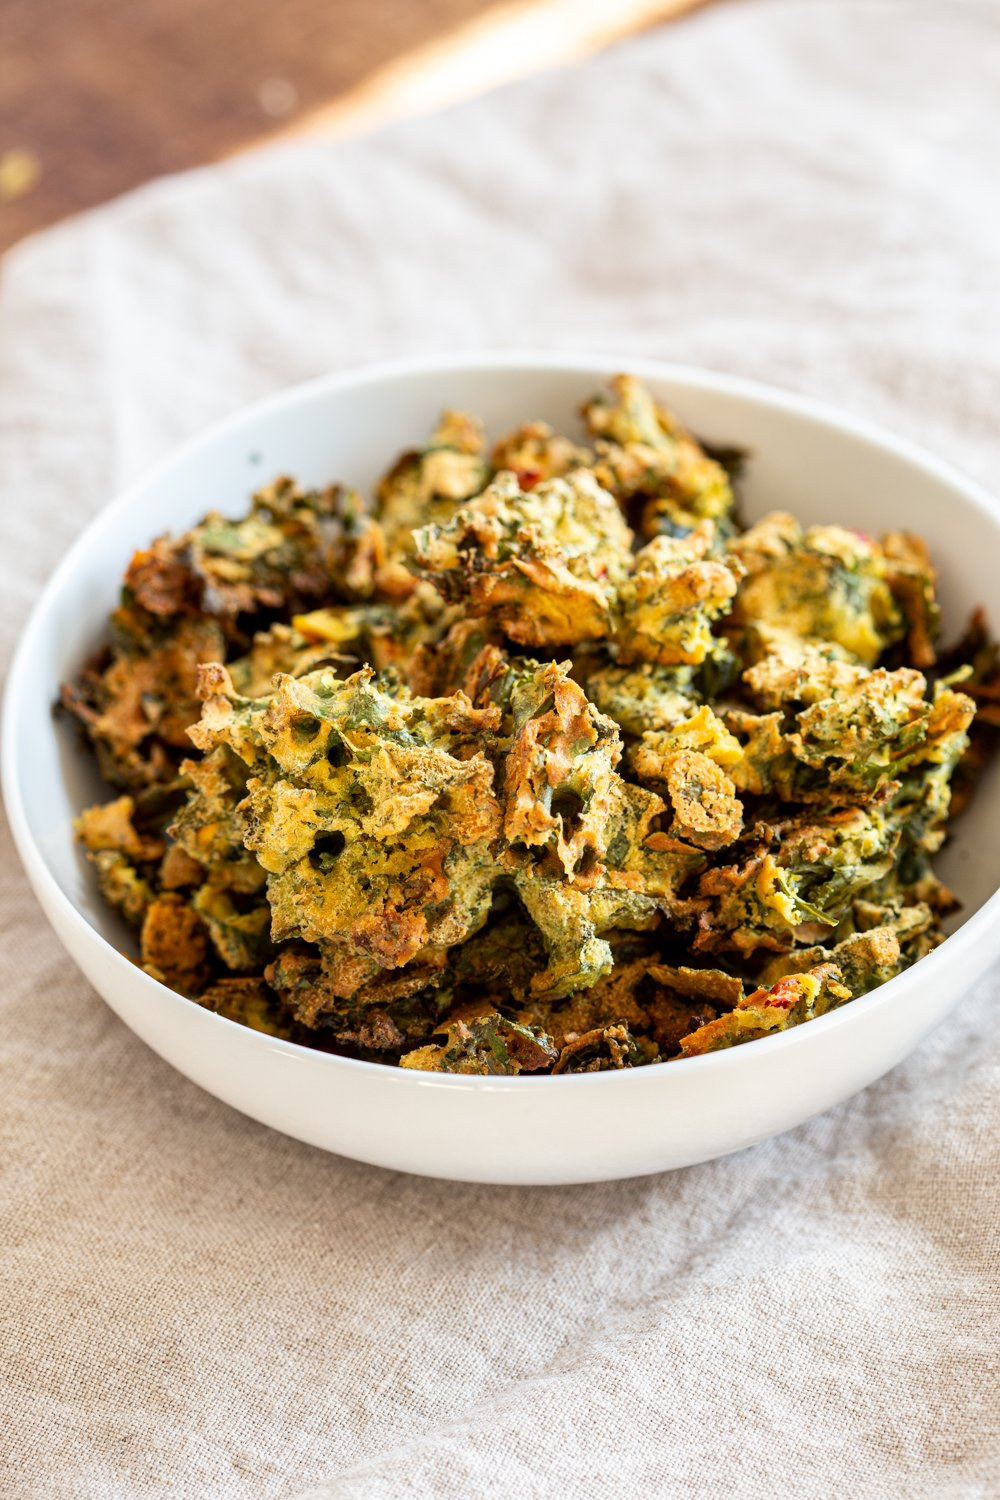 Kale Pakora in a white bowl